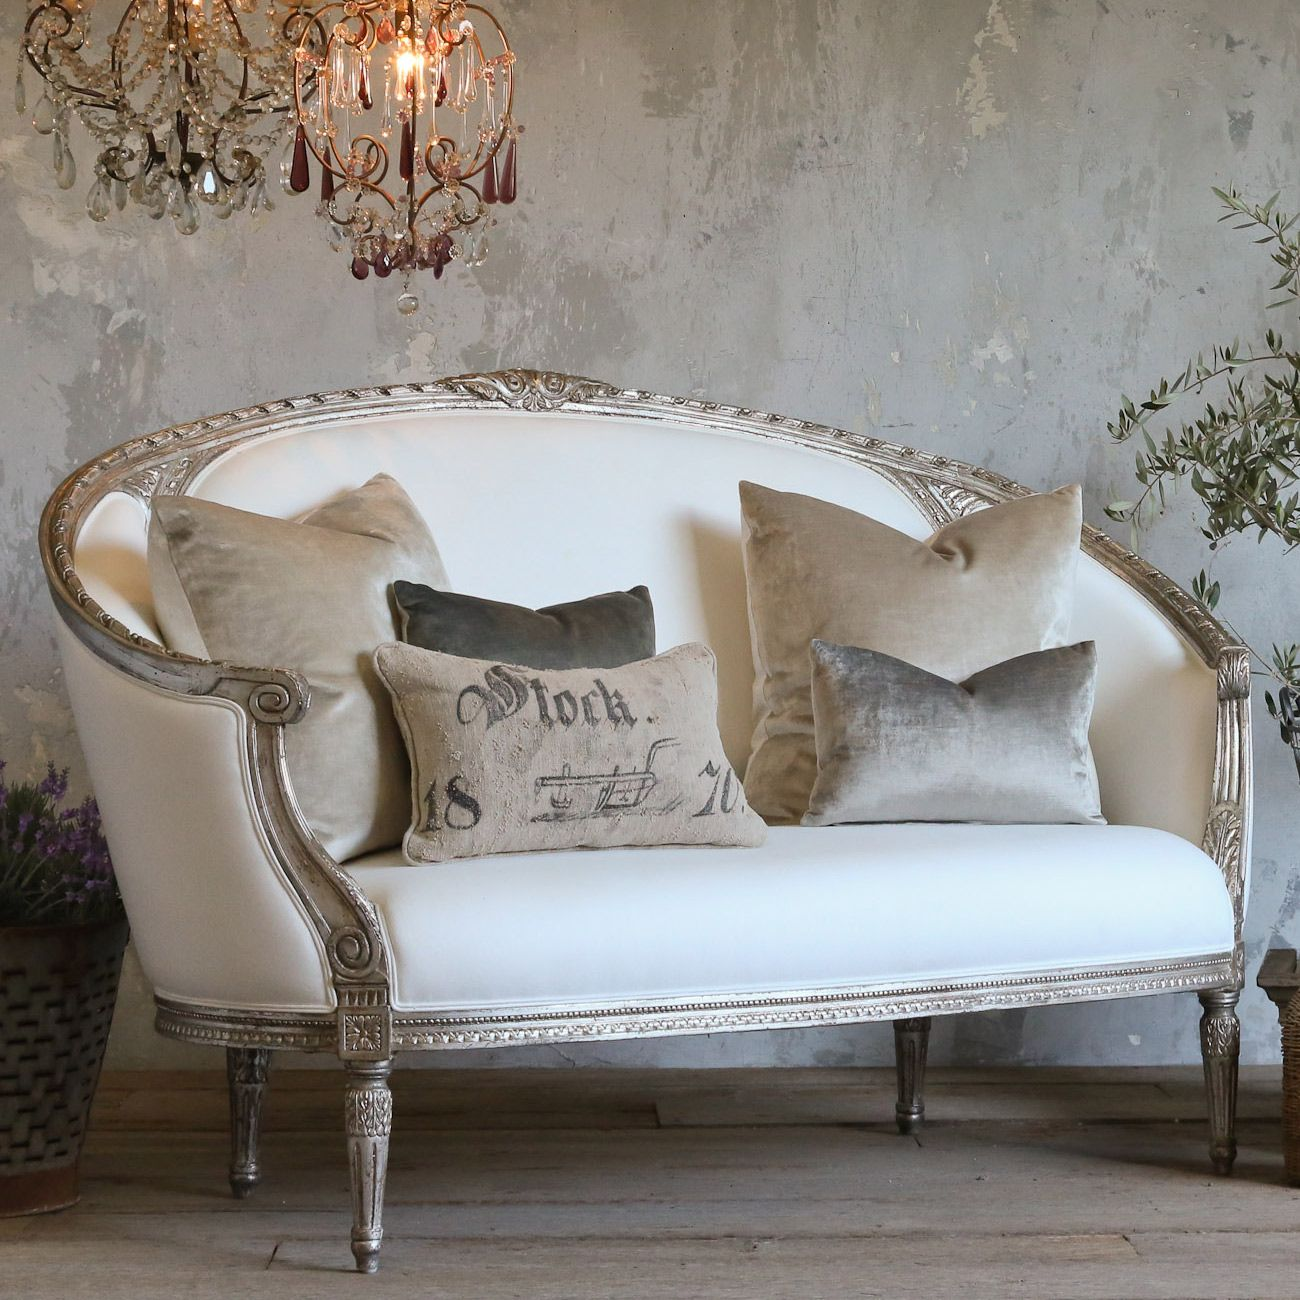 eloquence versailles canape antique silver sofa sarah chintomby chintomby nasafi grayce home. Black Bedroom Furniture Sets. Home Design Ideas